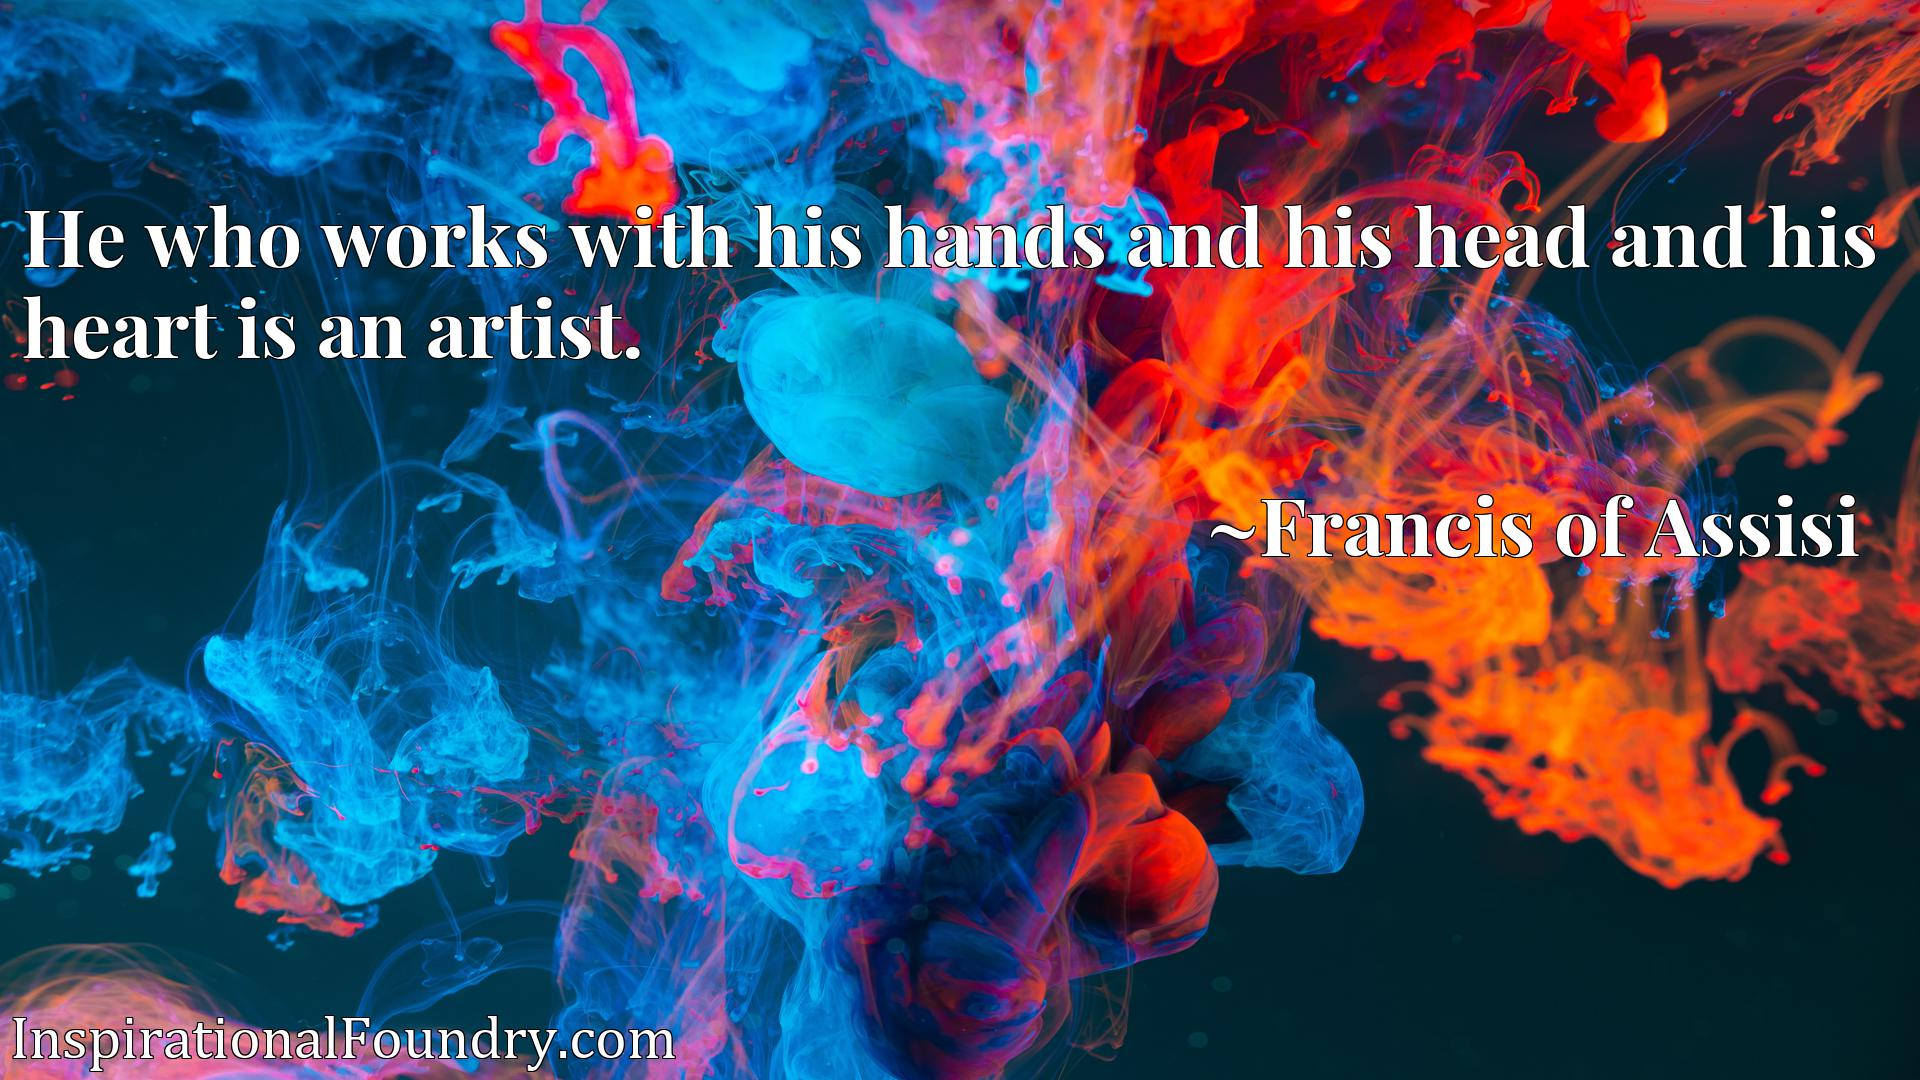 He who works with his hands and his head and his heart is an artist.